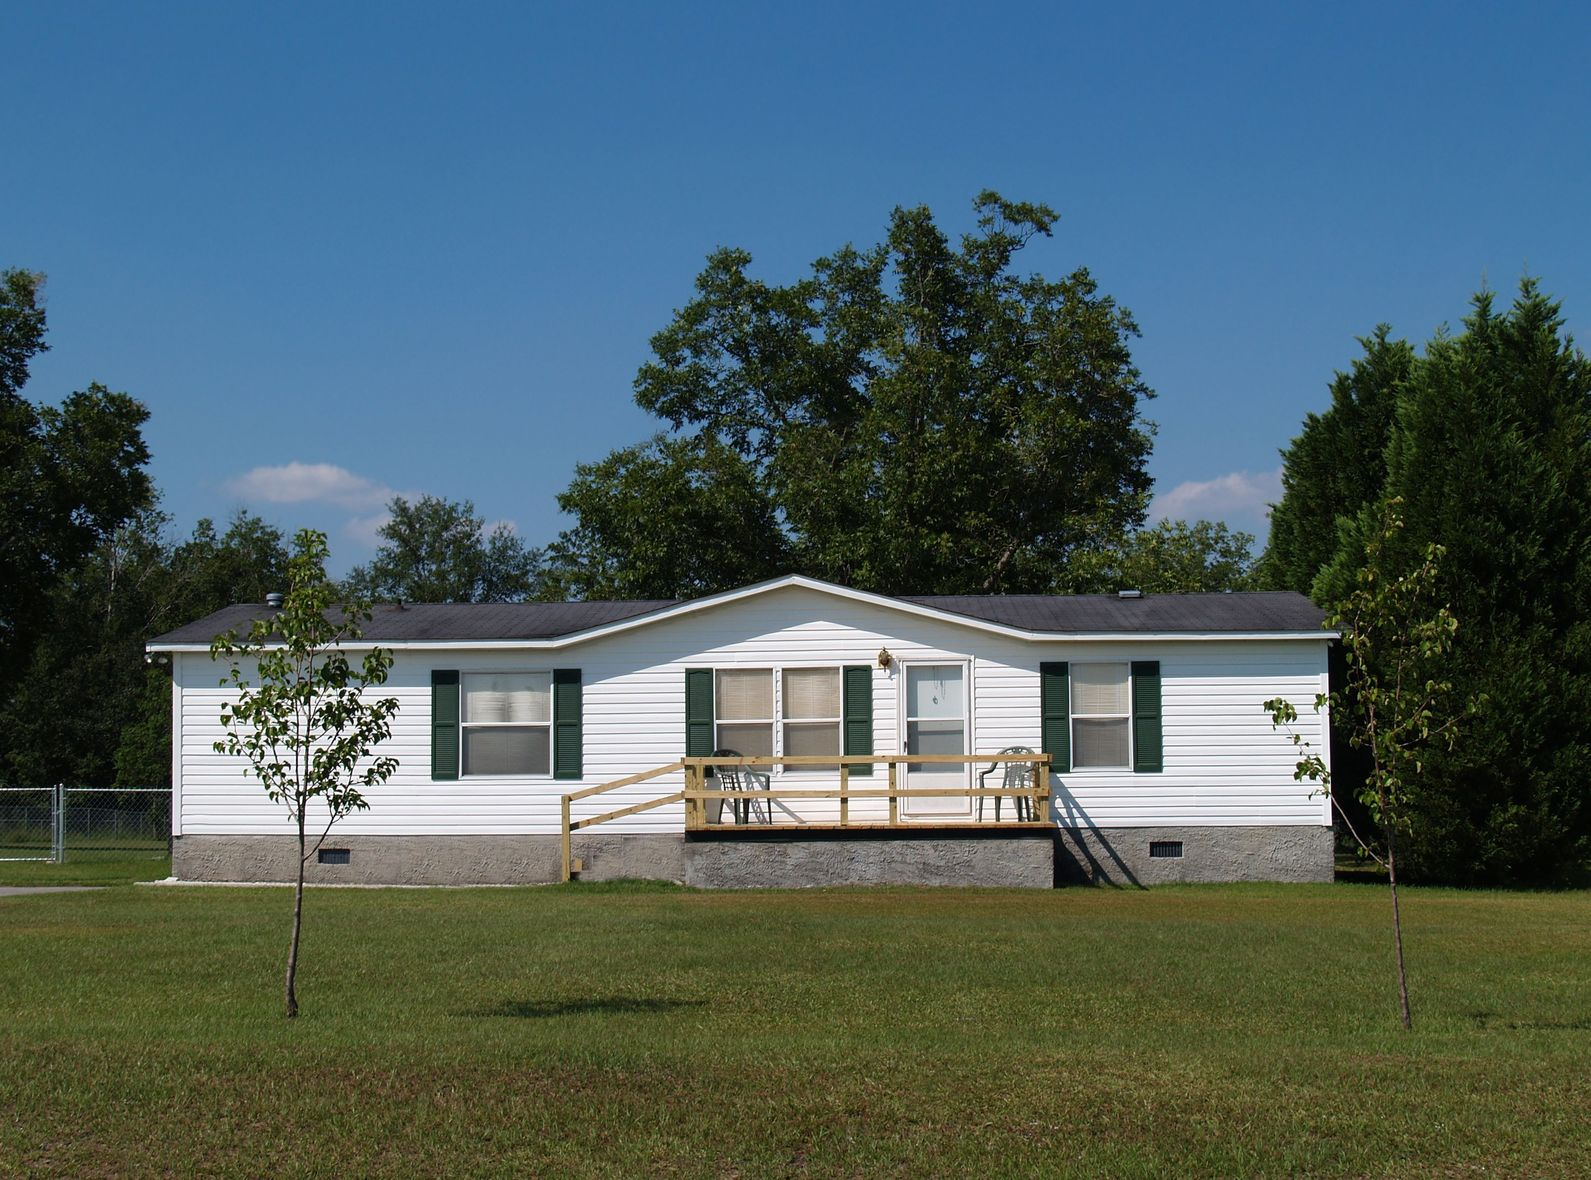 Lakewood, Lake Highlands, TX. Mobile Home Insurance